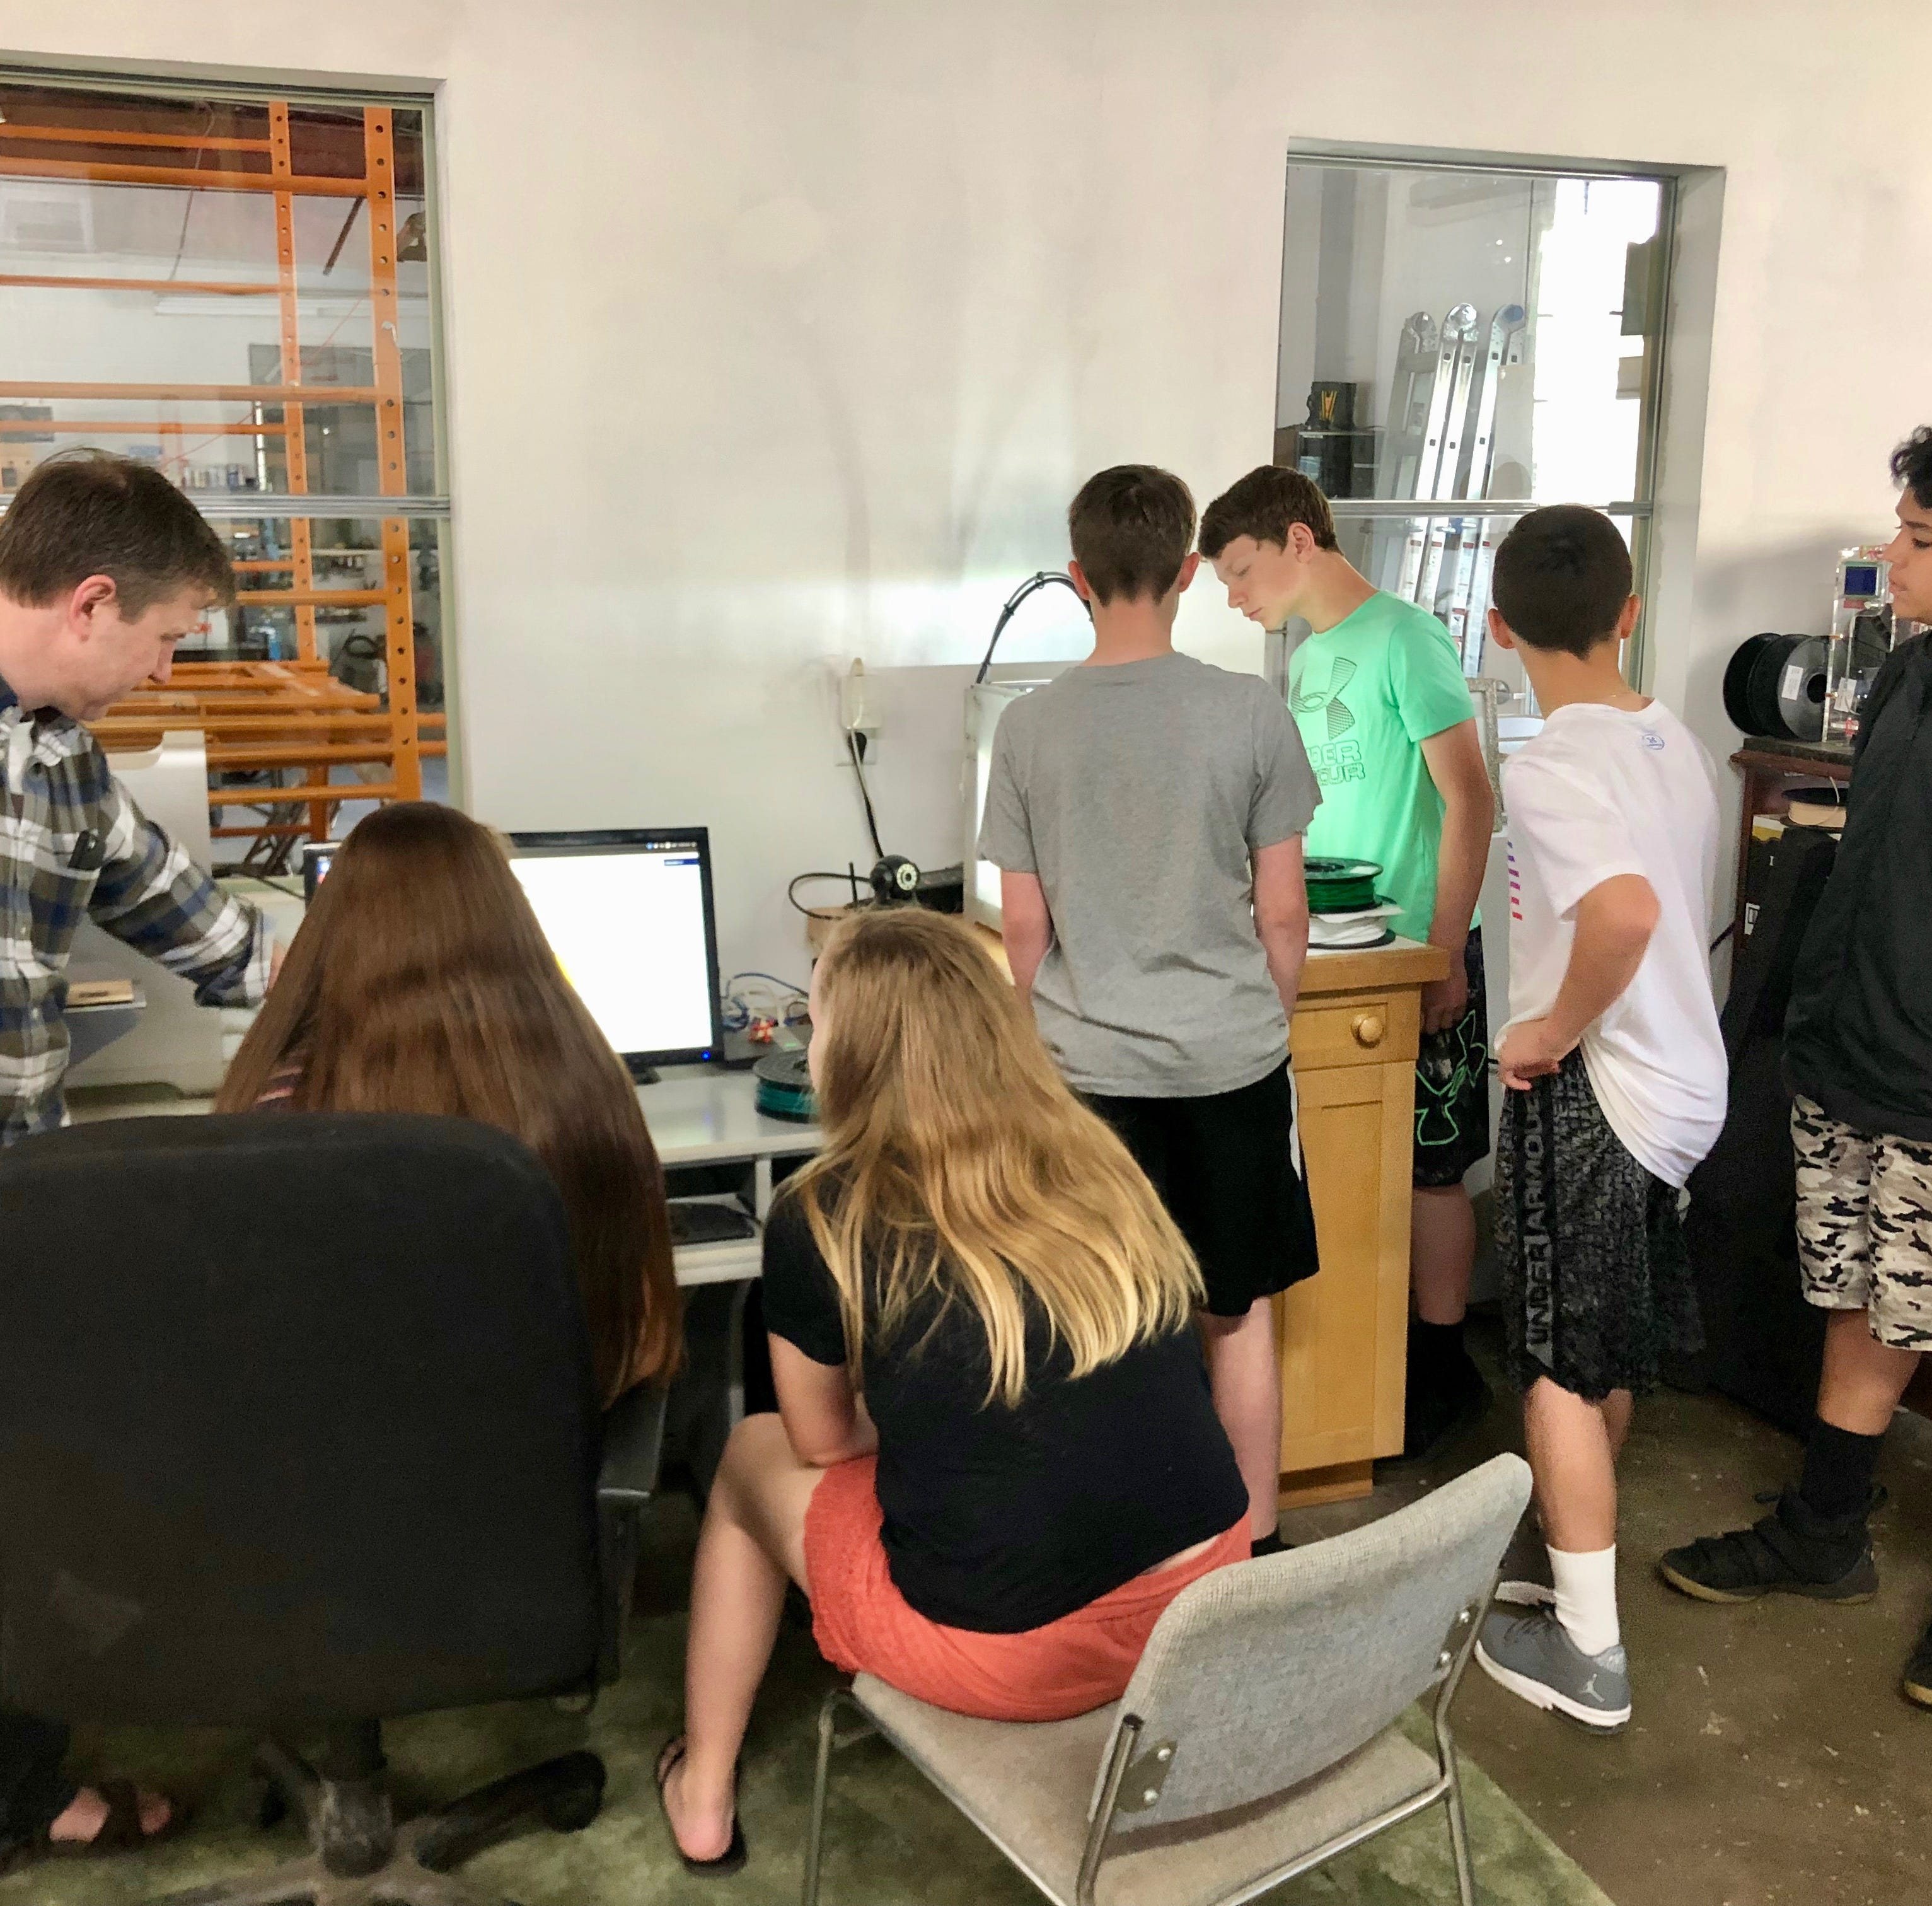 Middle schoolers 3D-printing prosthetic hands for people in need